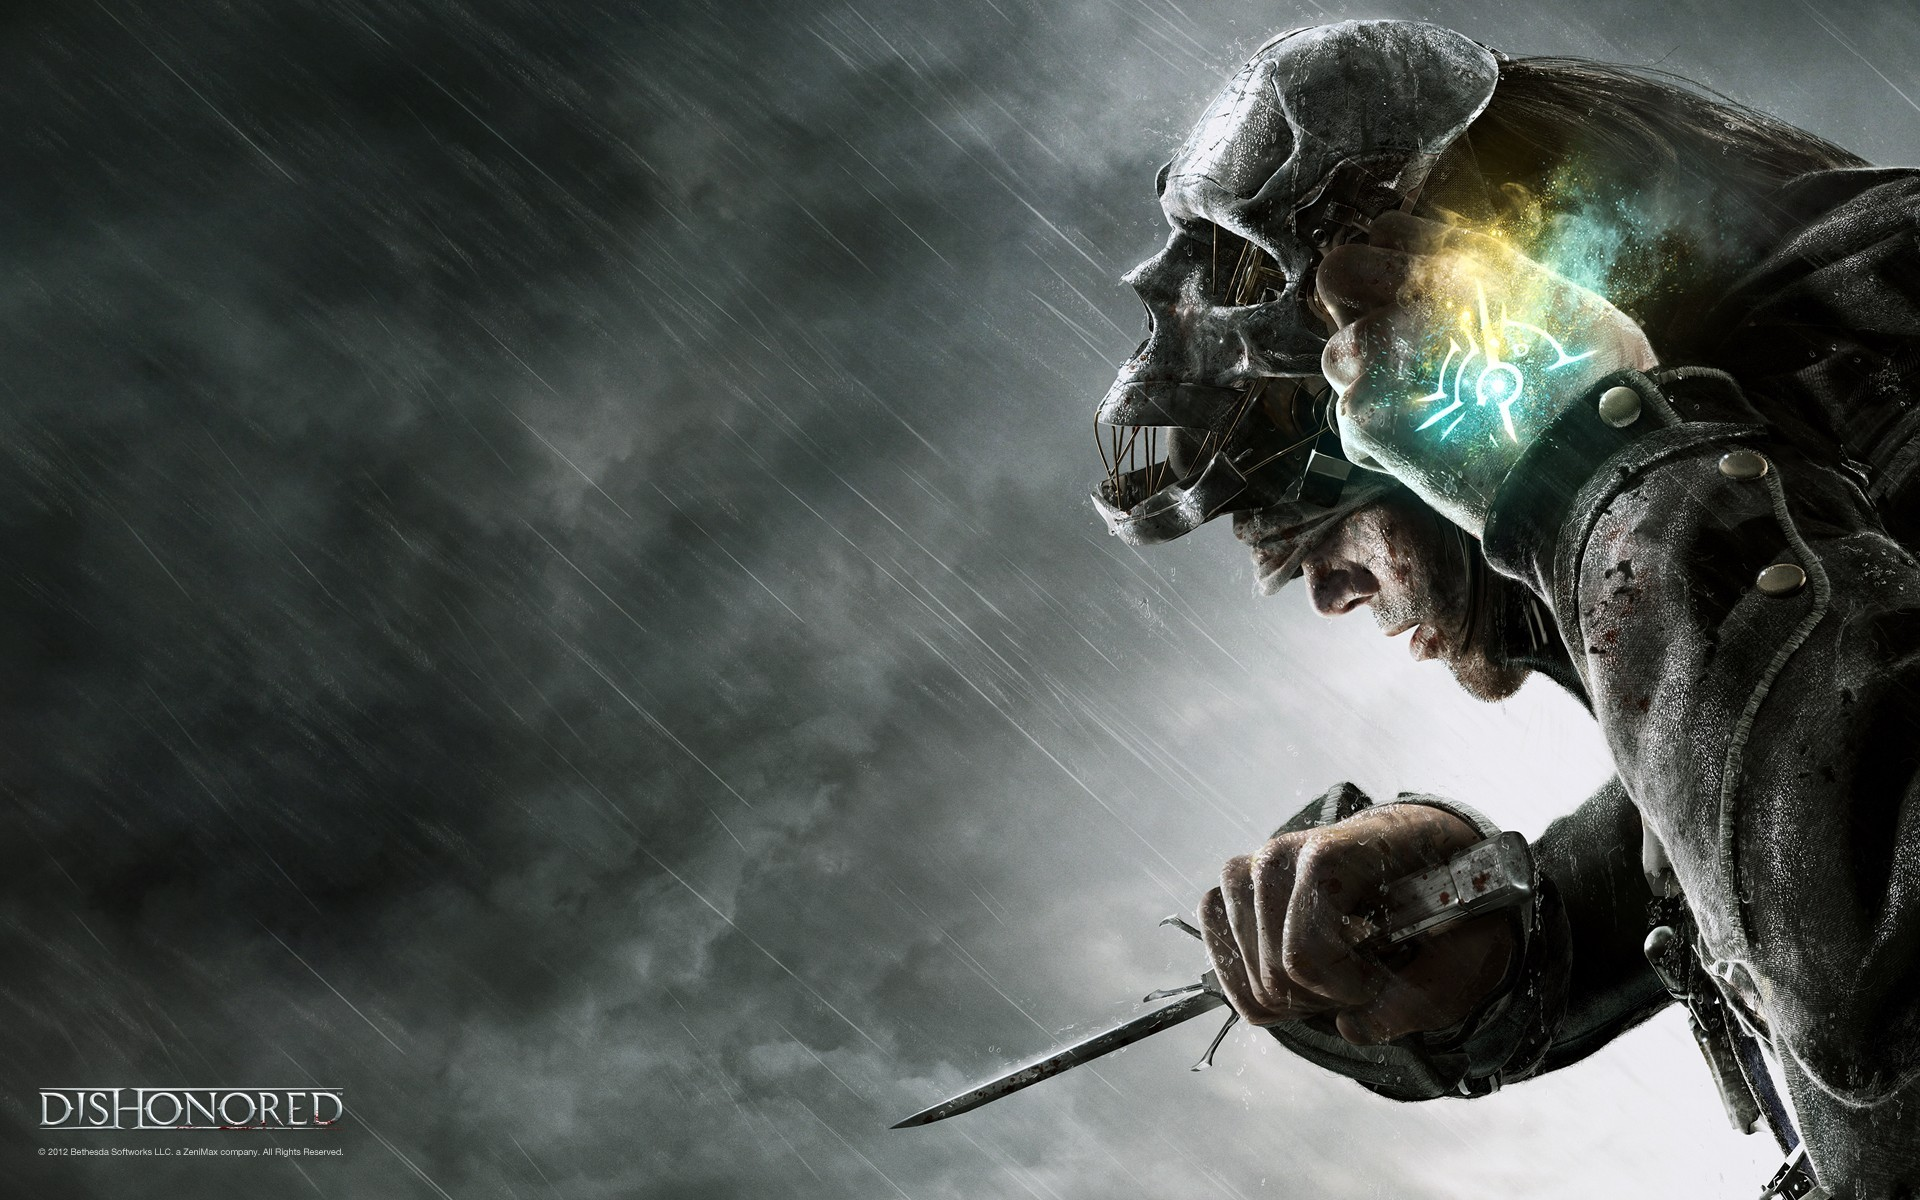 Wallpapers Hd De Dishonored Nosolobits